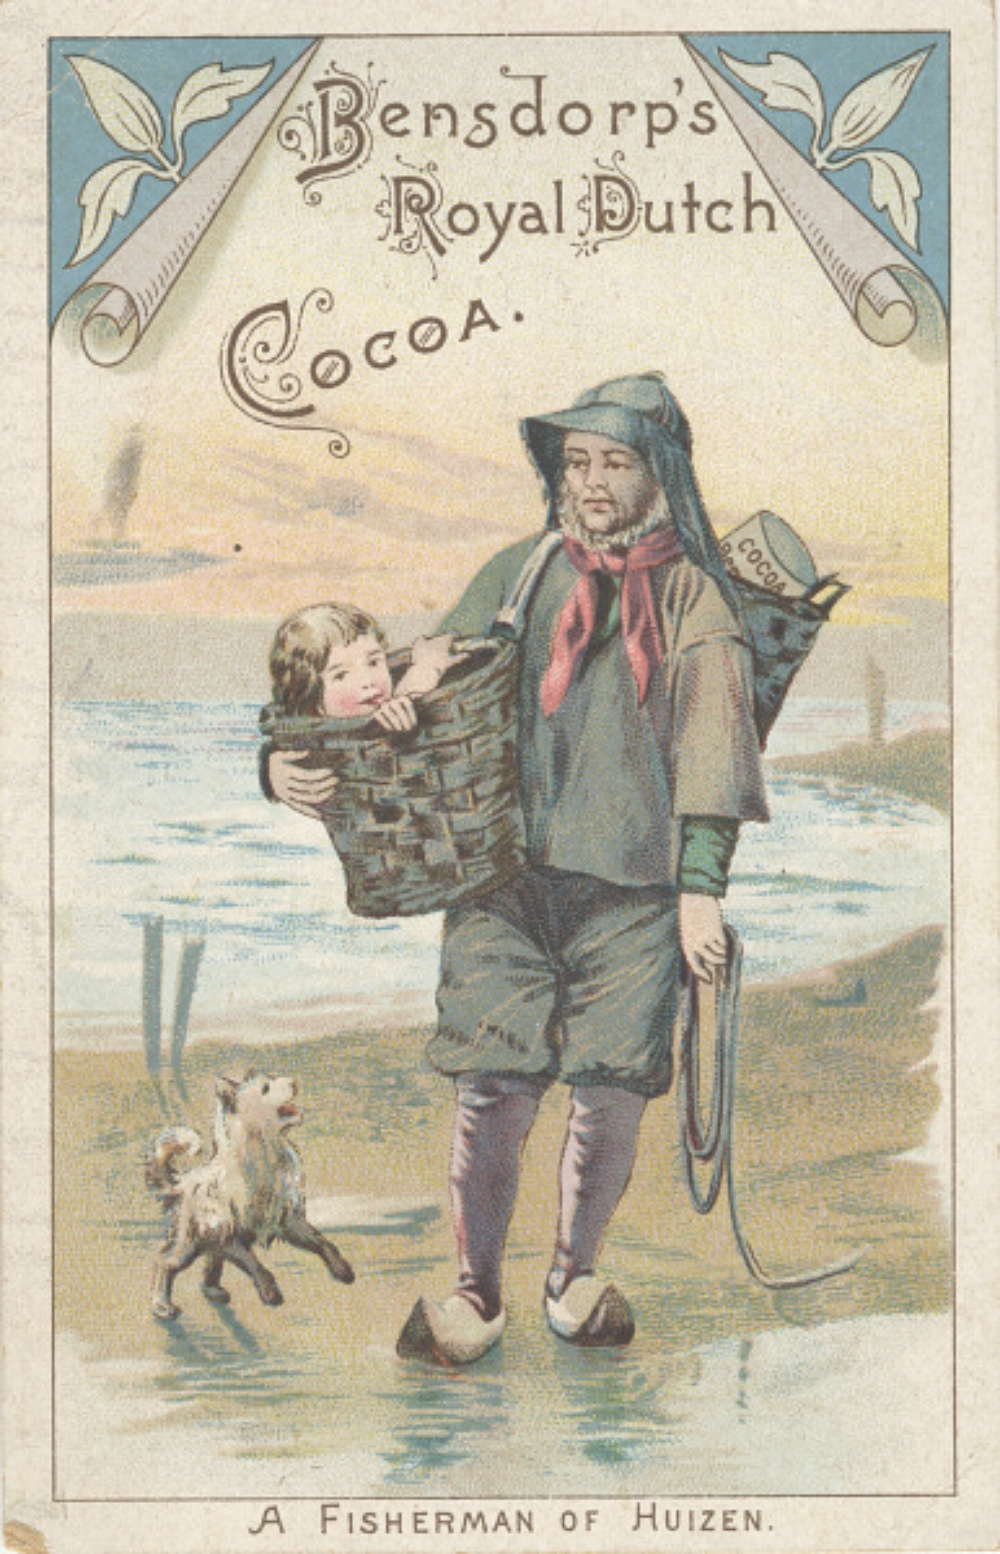 late 19th century advertising card for Dutch cocoa